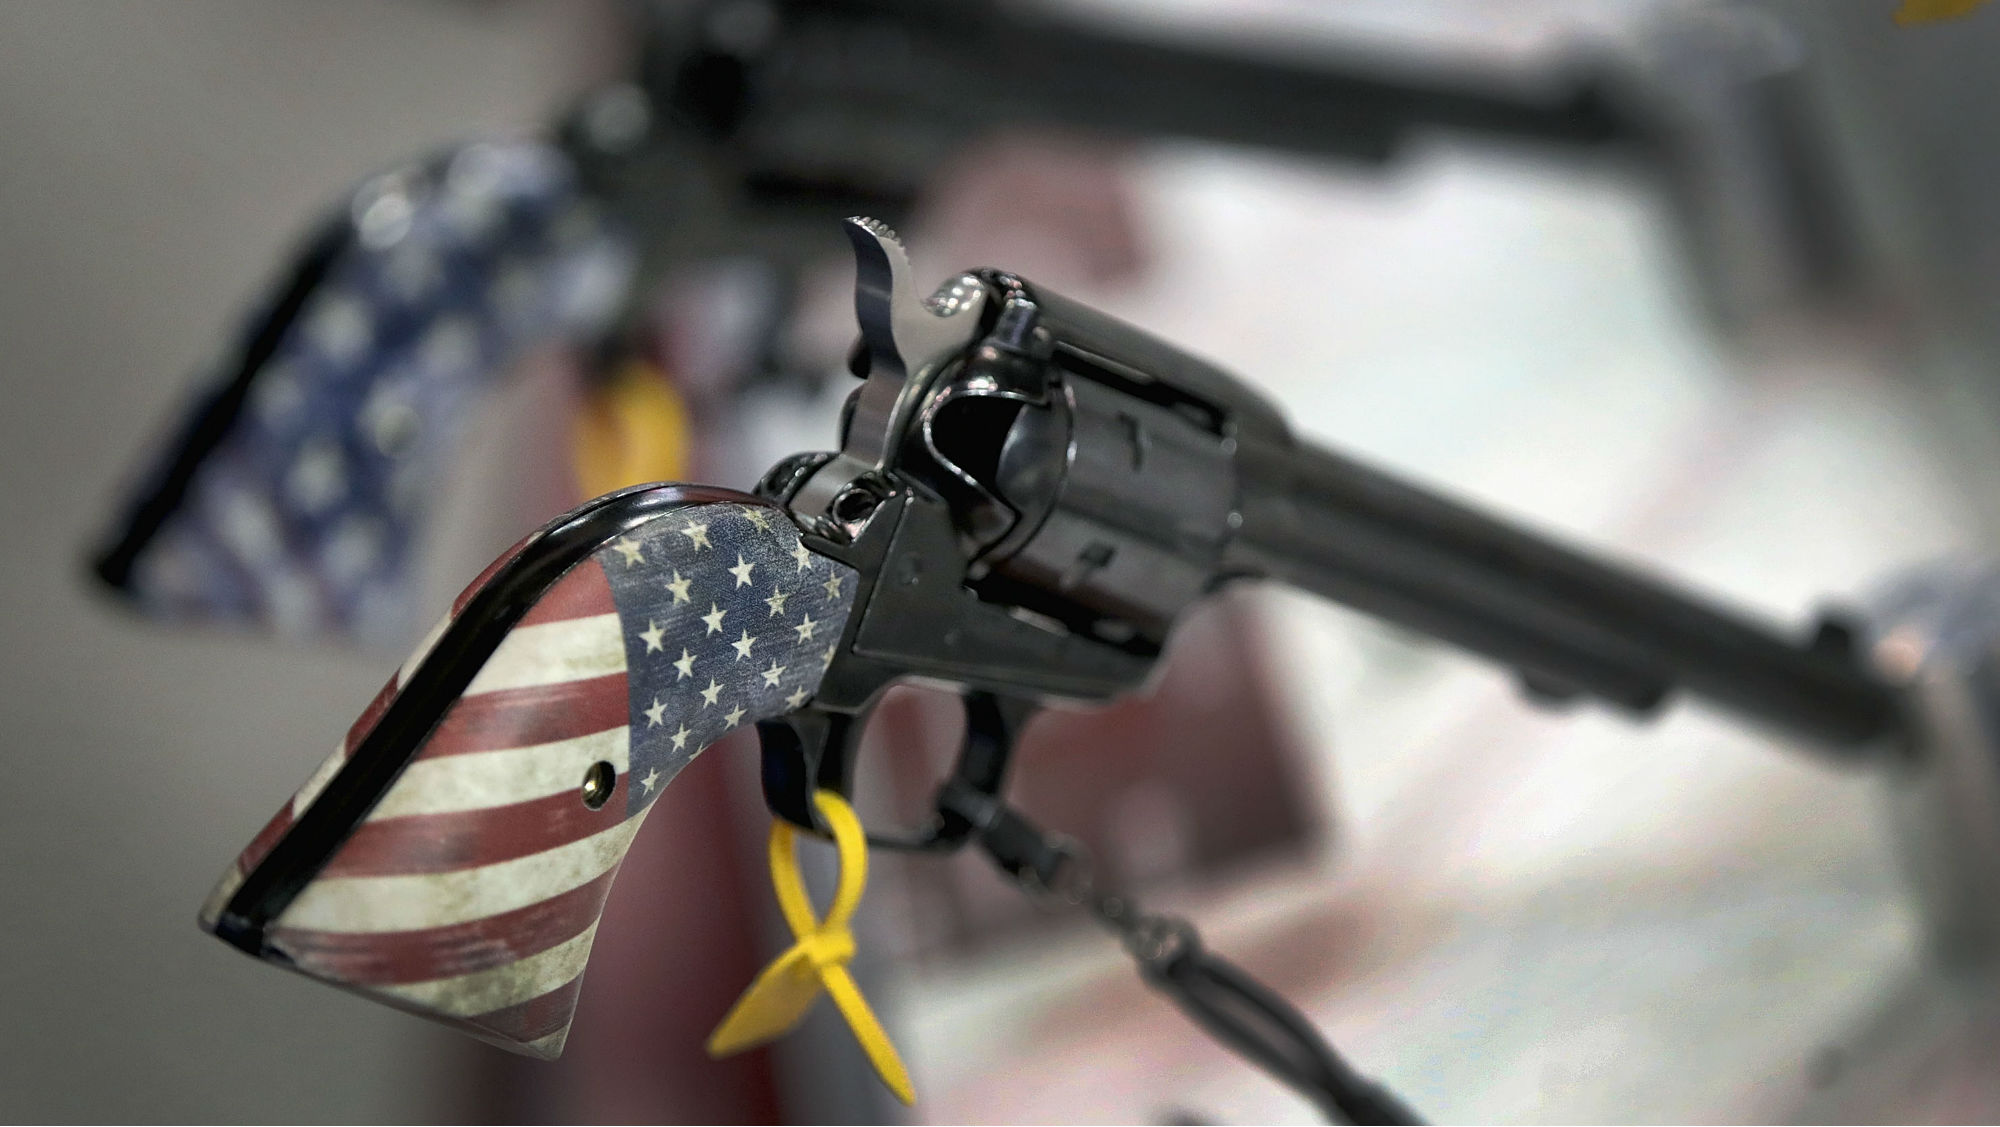 Dissenting Opinions: On Mass Shootings in the United States